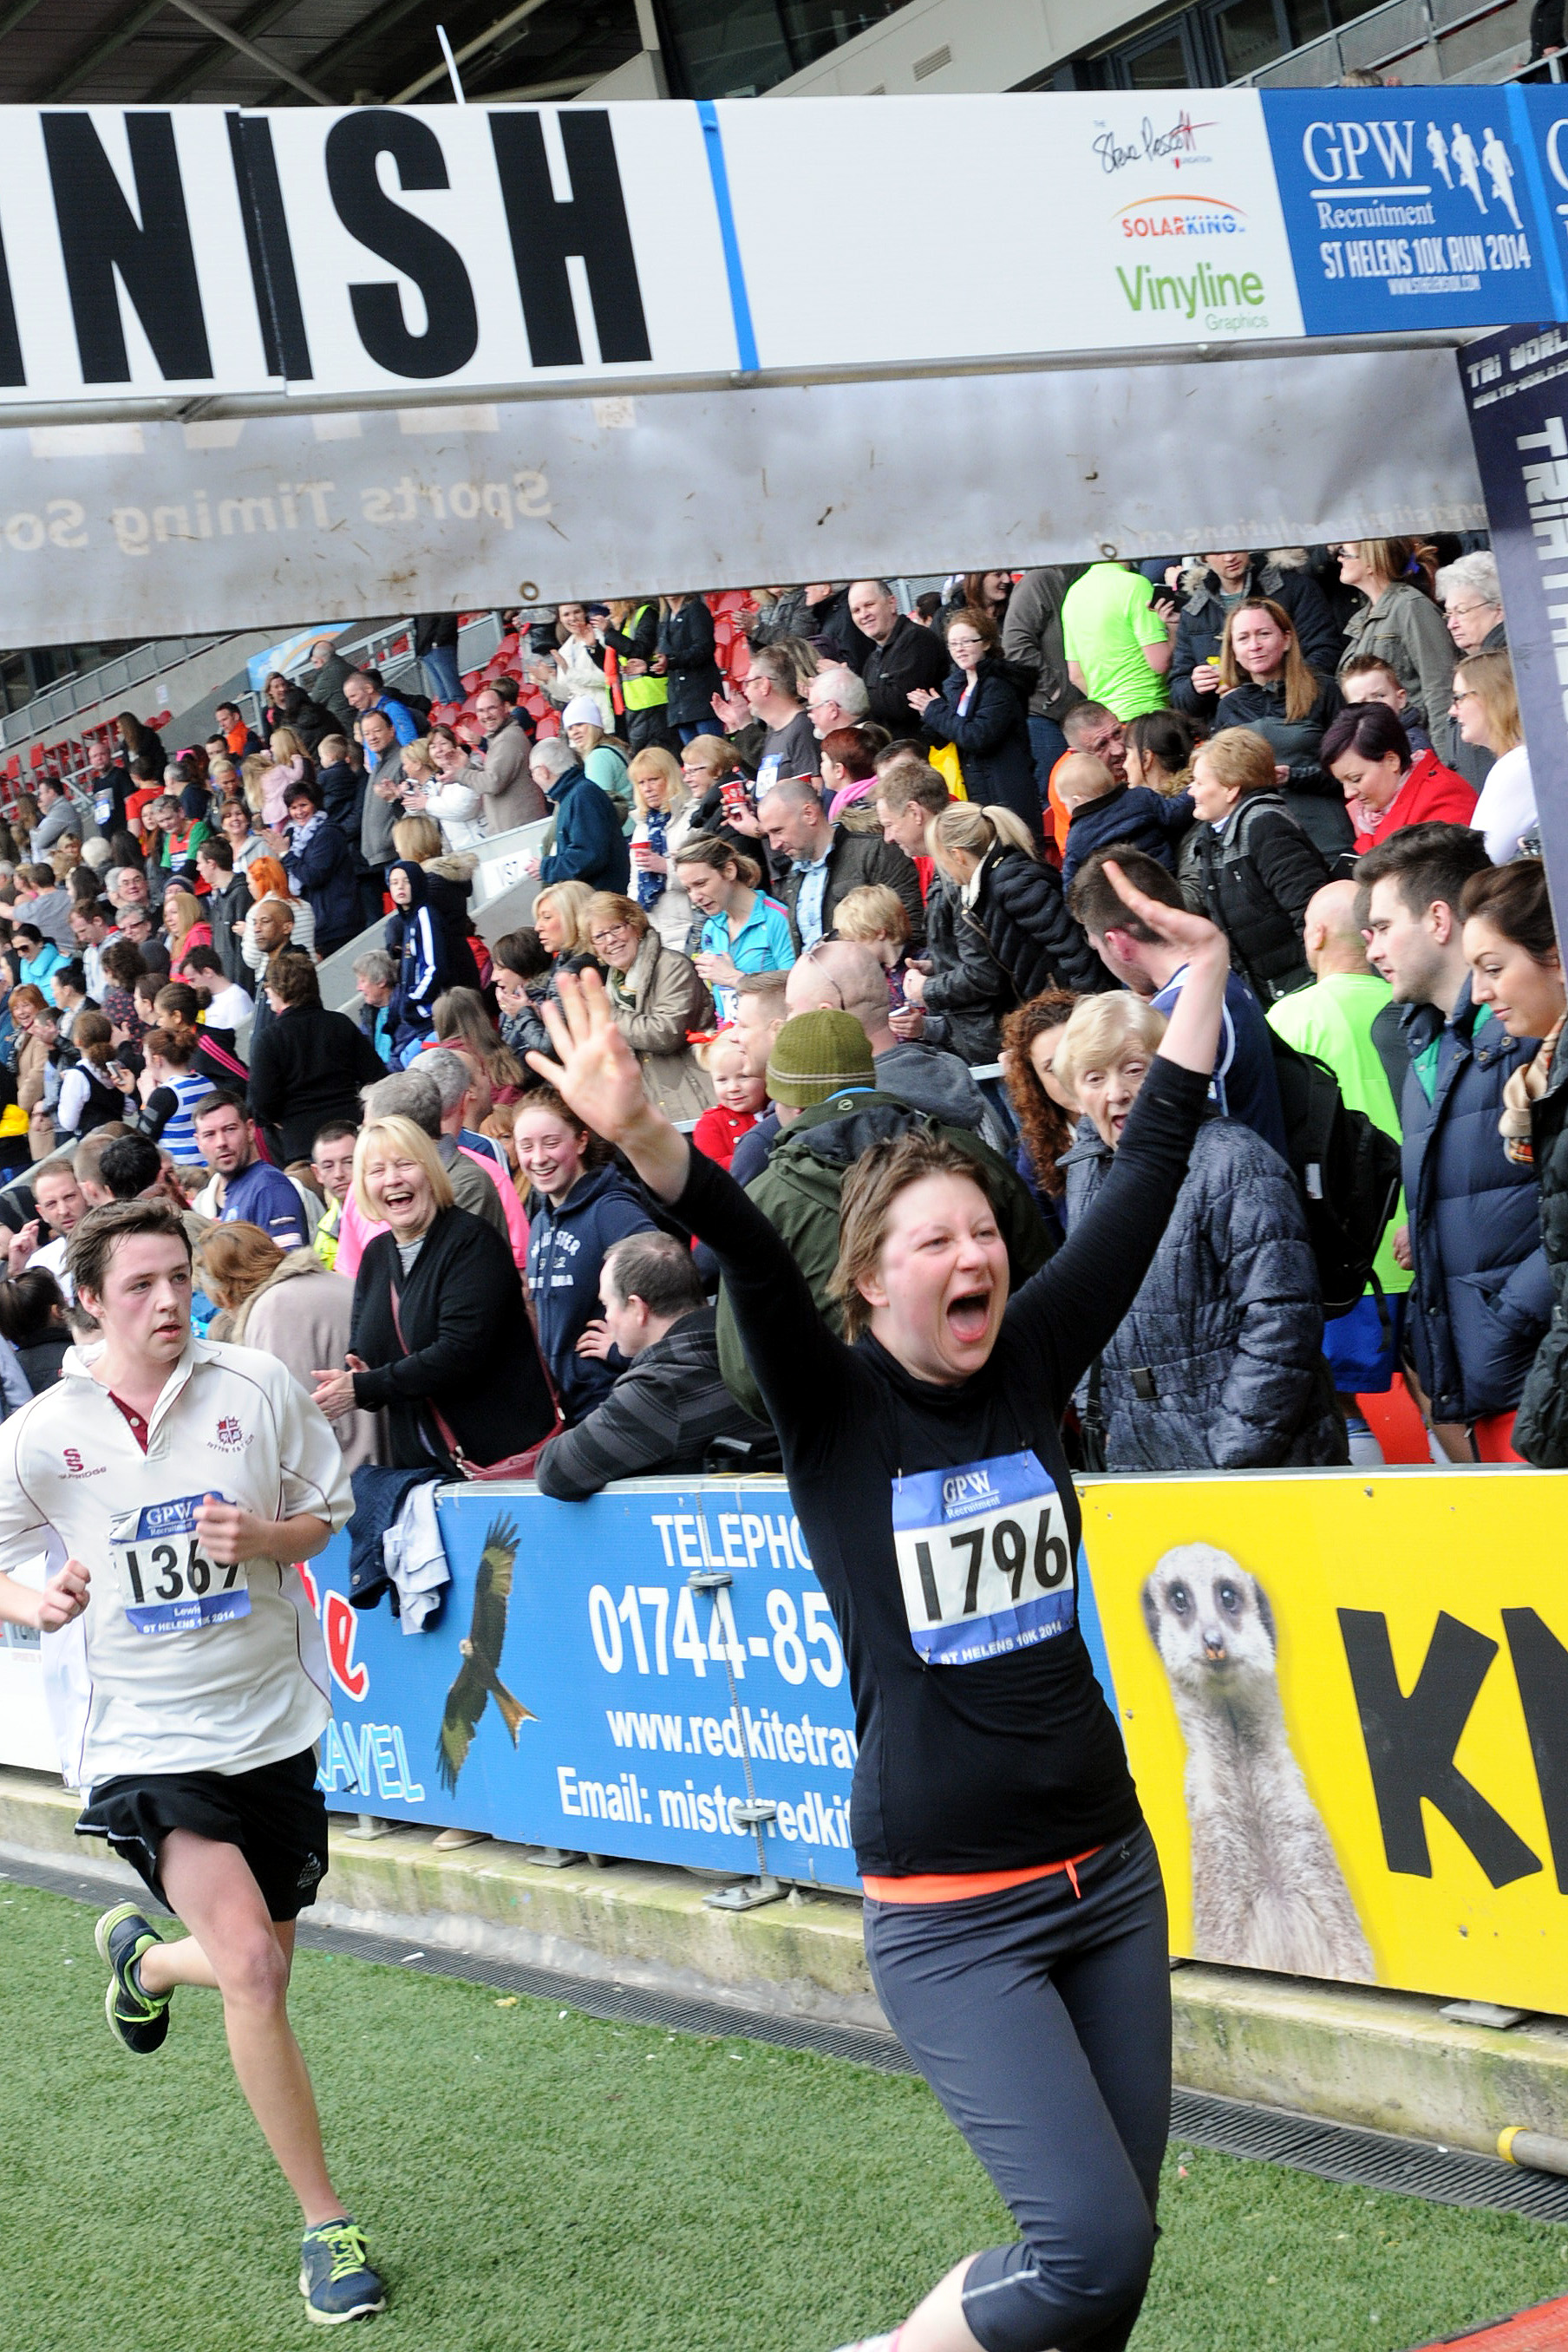 Finishing with a flourish: One runner is delighted t